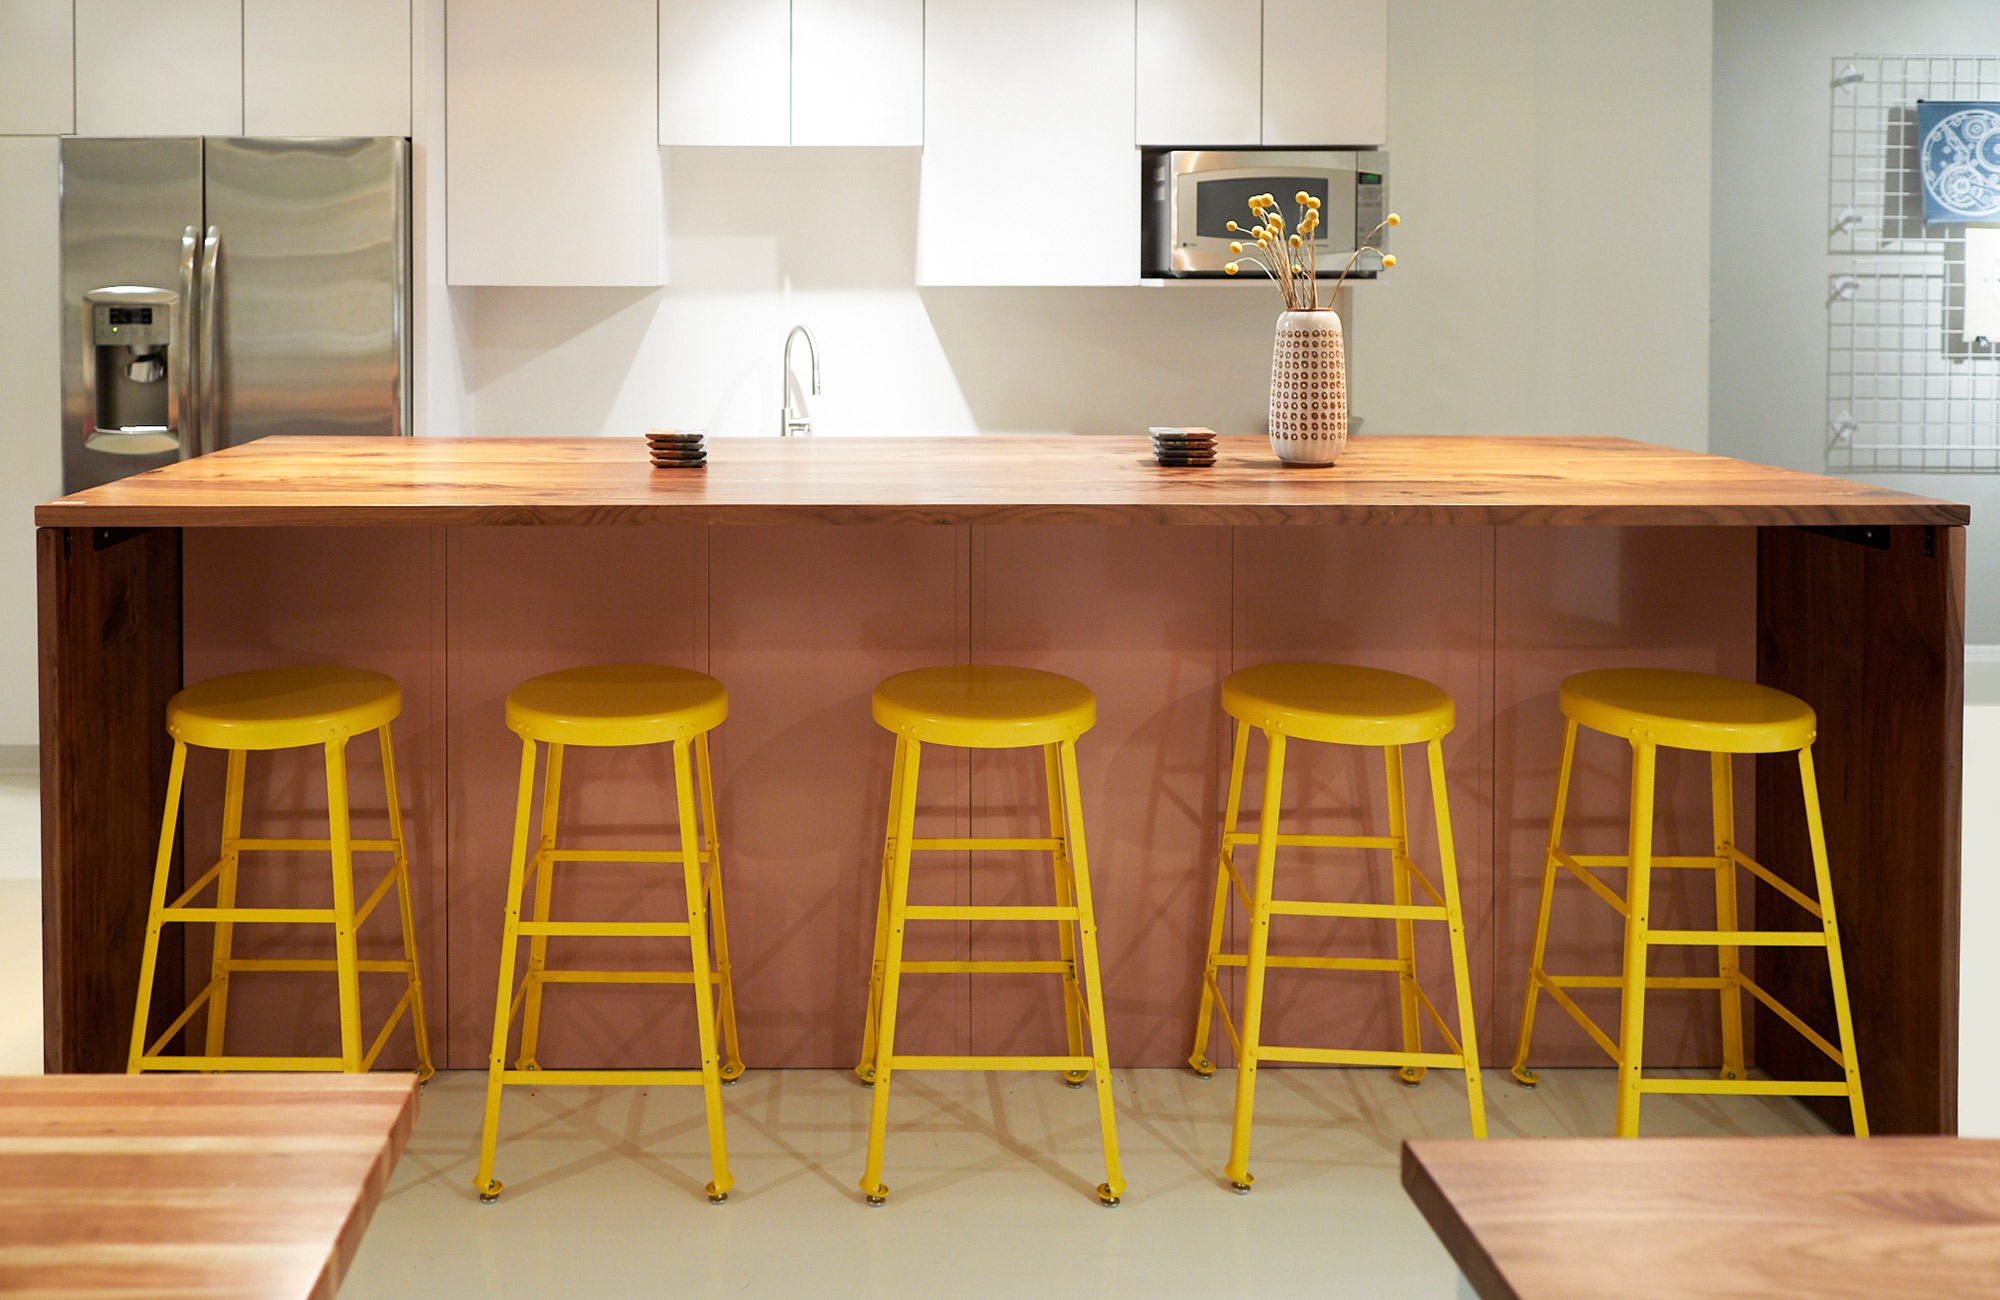 Yellow stools under pink table.